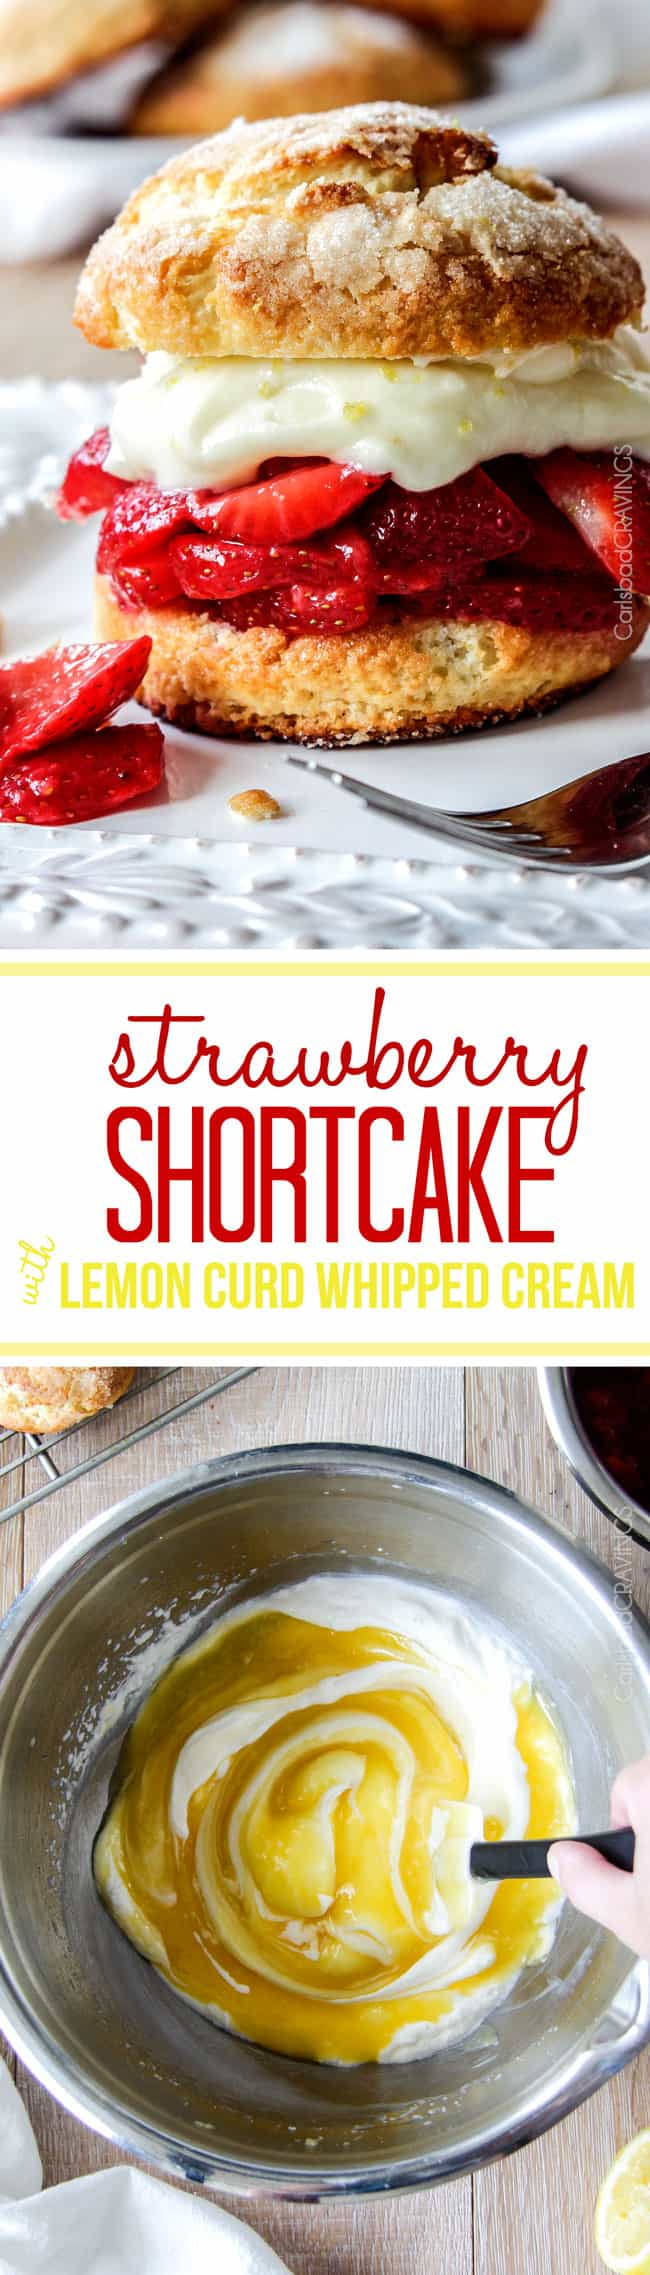 BEST Strawberry Shortcake ever! with light, tender cake-like biscuits, sugar kissed fresh strawberries and silky sweet citrus Lemon Curd Whipped Cream!